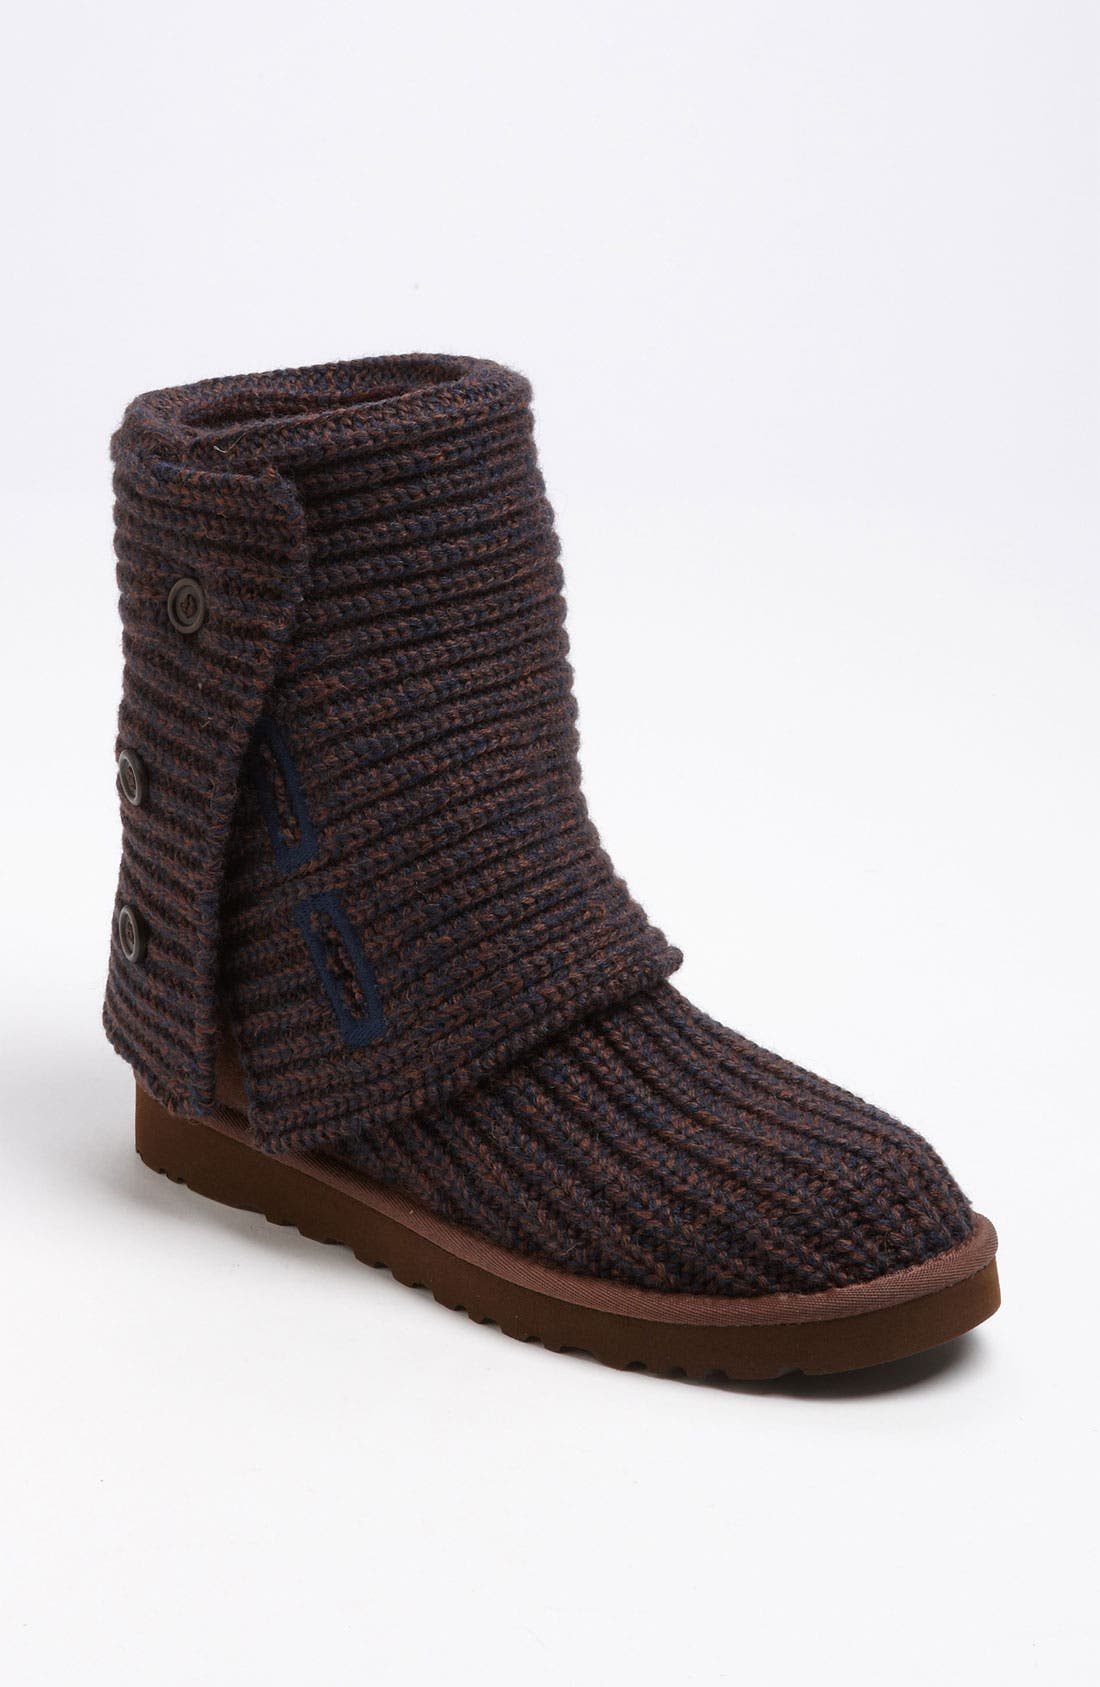 Main Image - UGG® 'Cardy' Classic Knit Boot (Women)